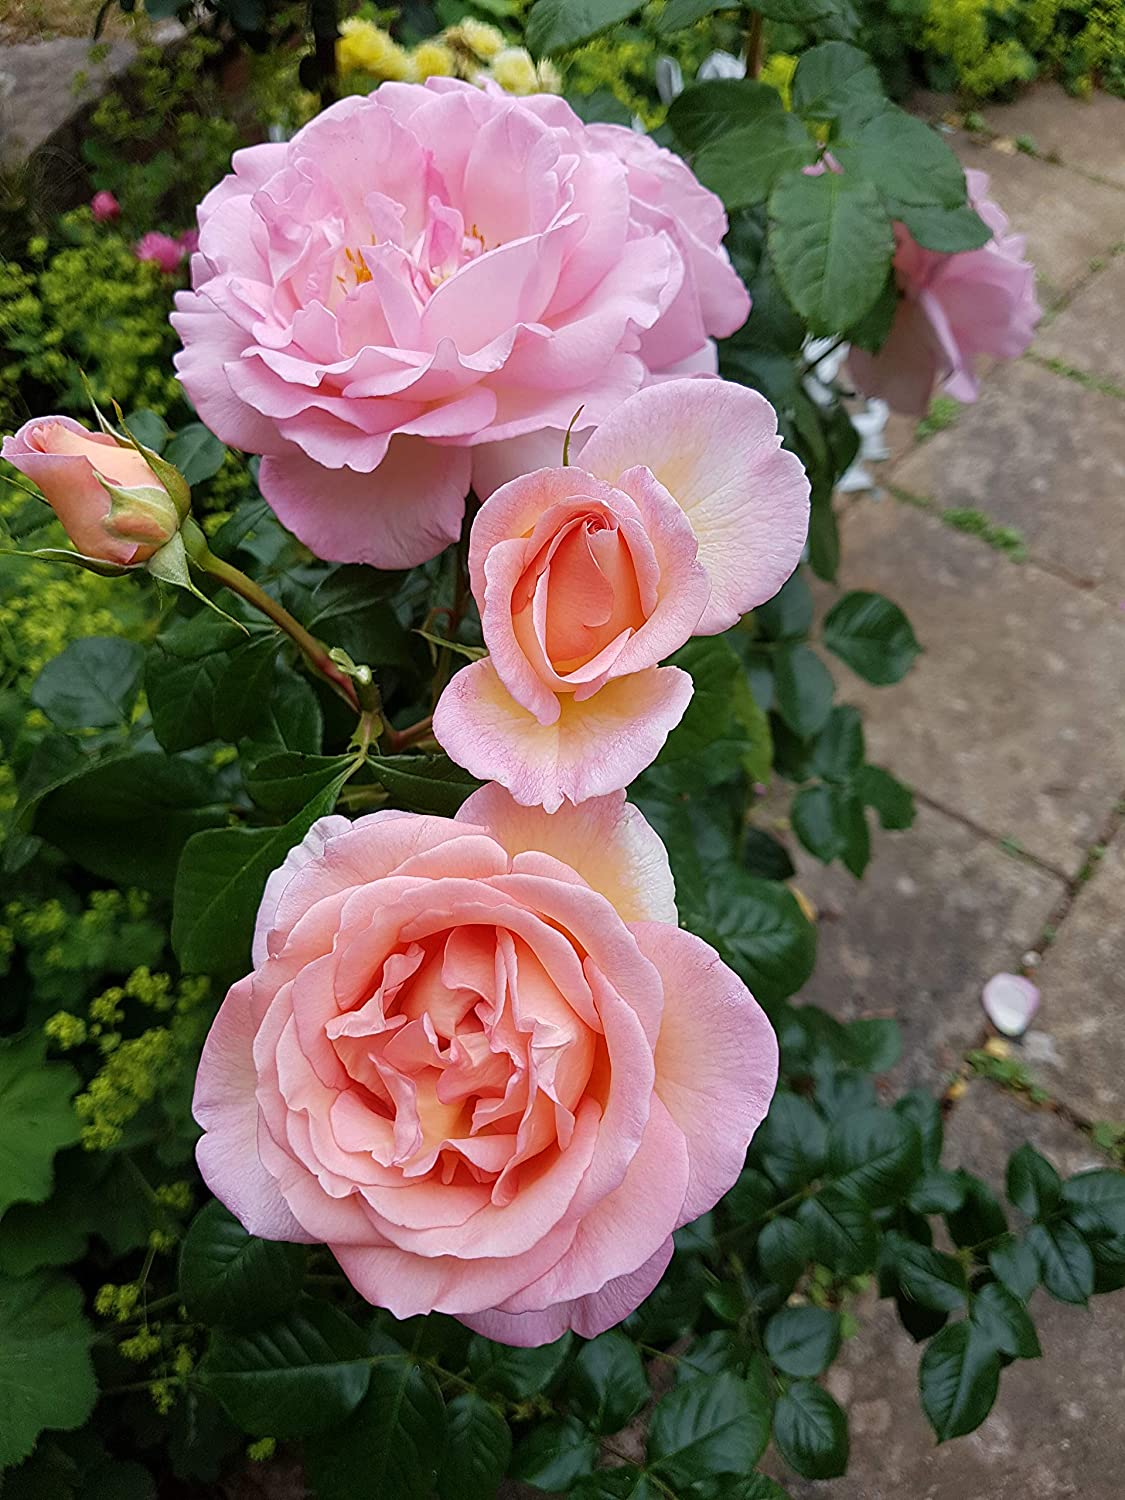 GreenBrokers SWEET SYRIE CLIMBING ROSE 4.5 LITRE With Gift Wrap YELLOW EDGED PINK